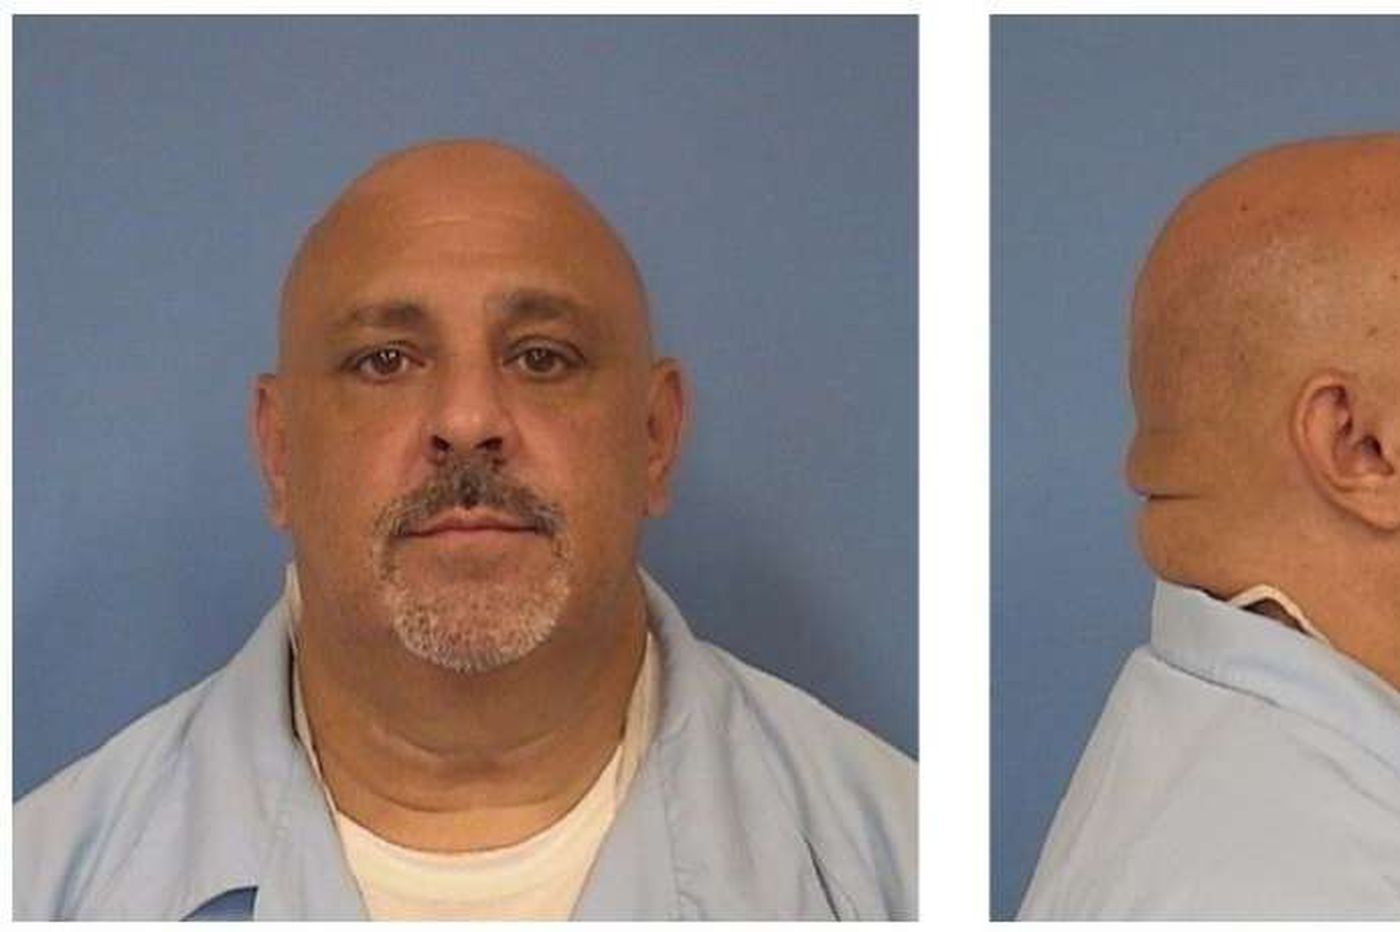 Convicted scammer creates federal PACs from prison